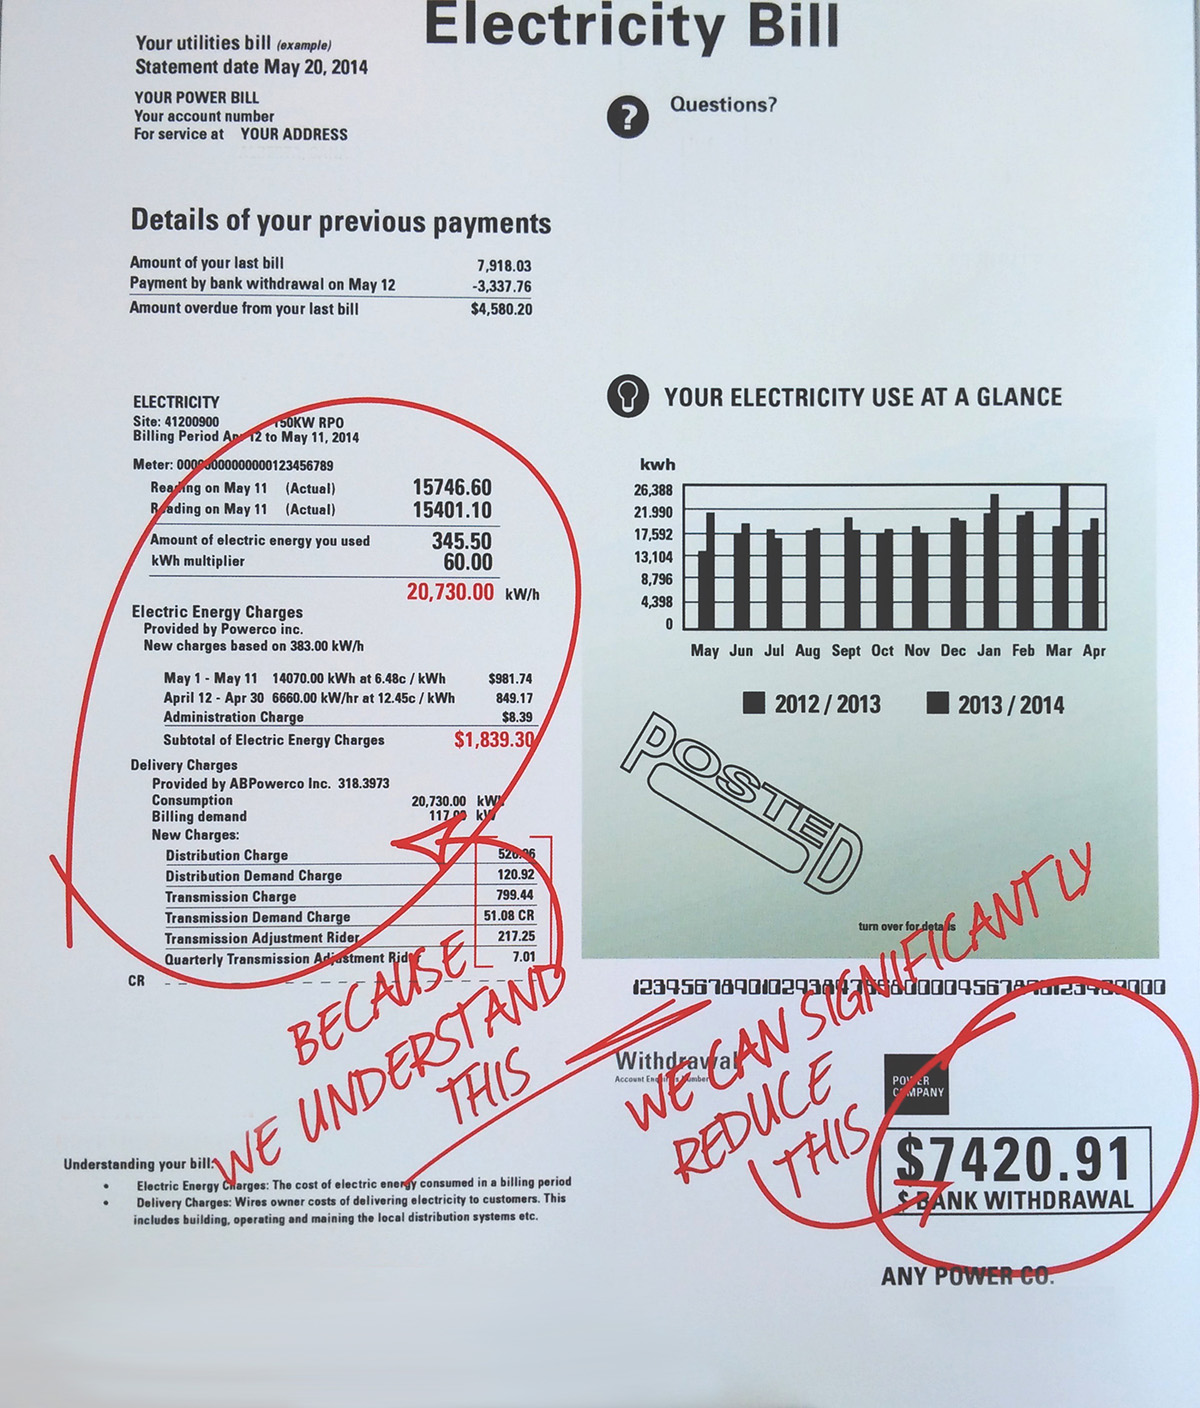 utility bill audit image